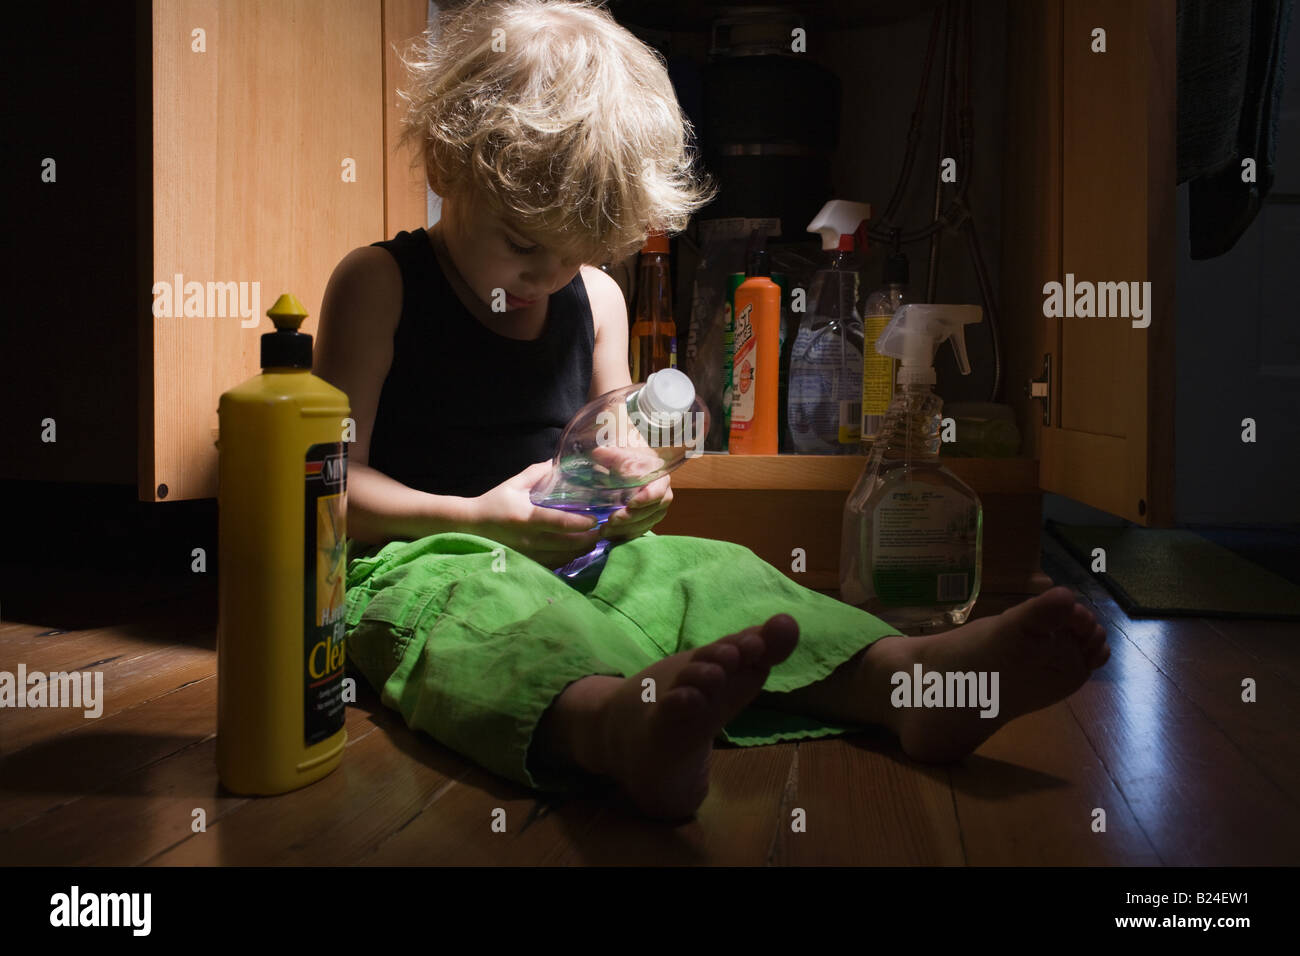 Little boy with cleaning products - Stock Image